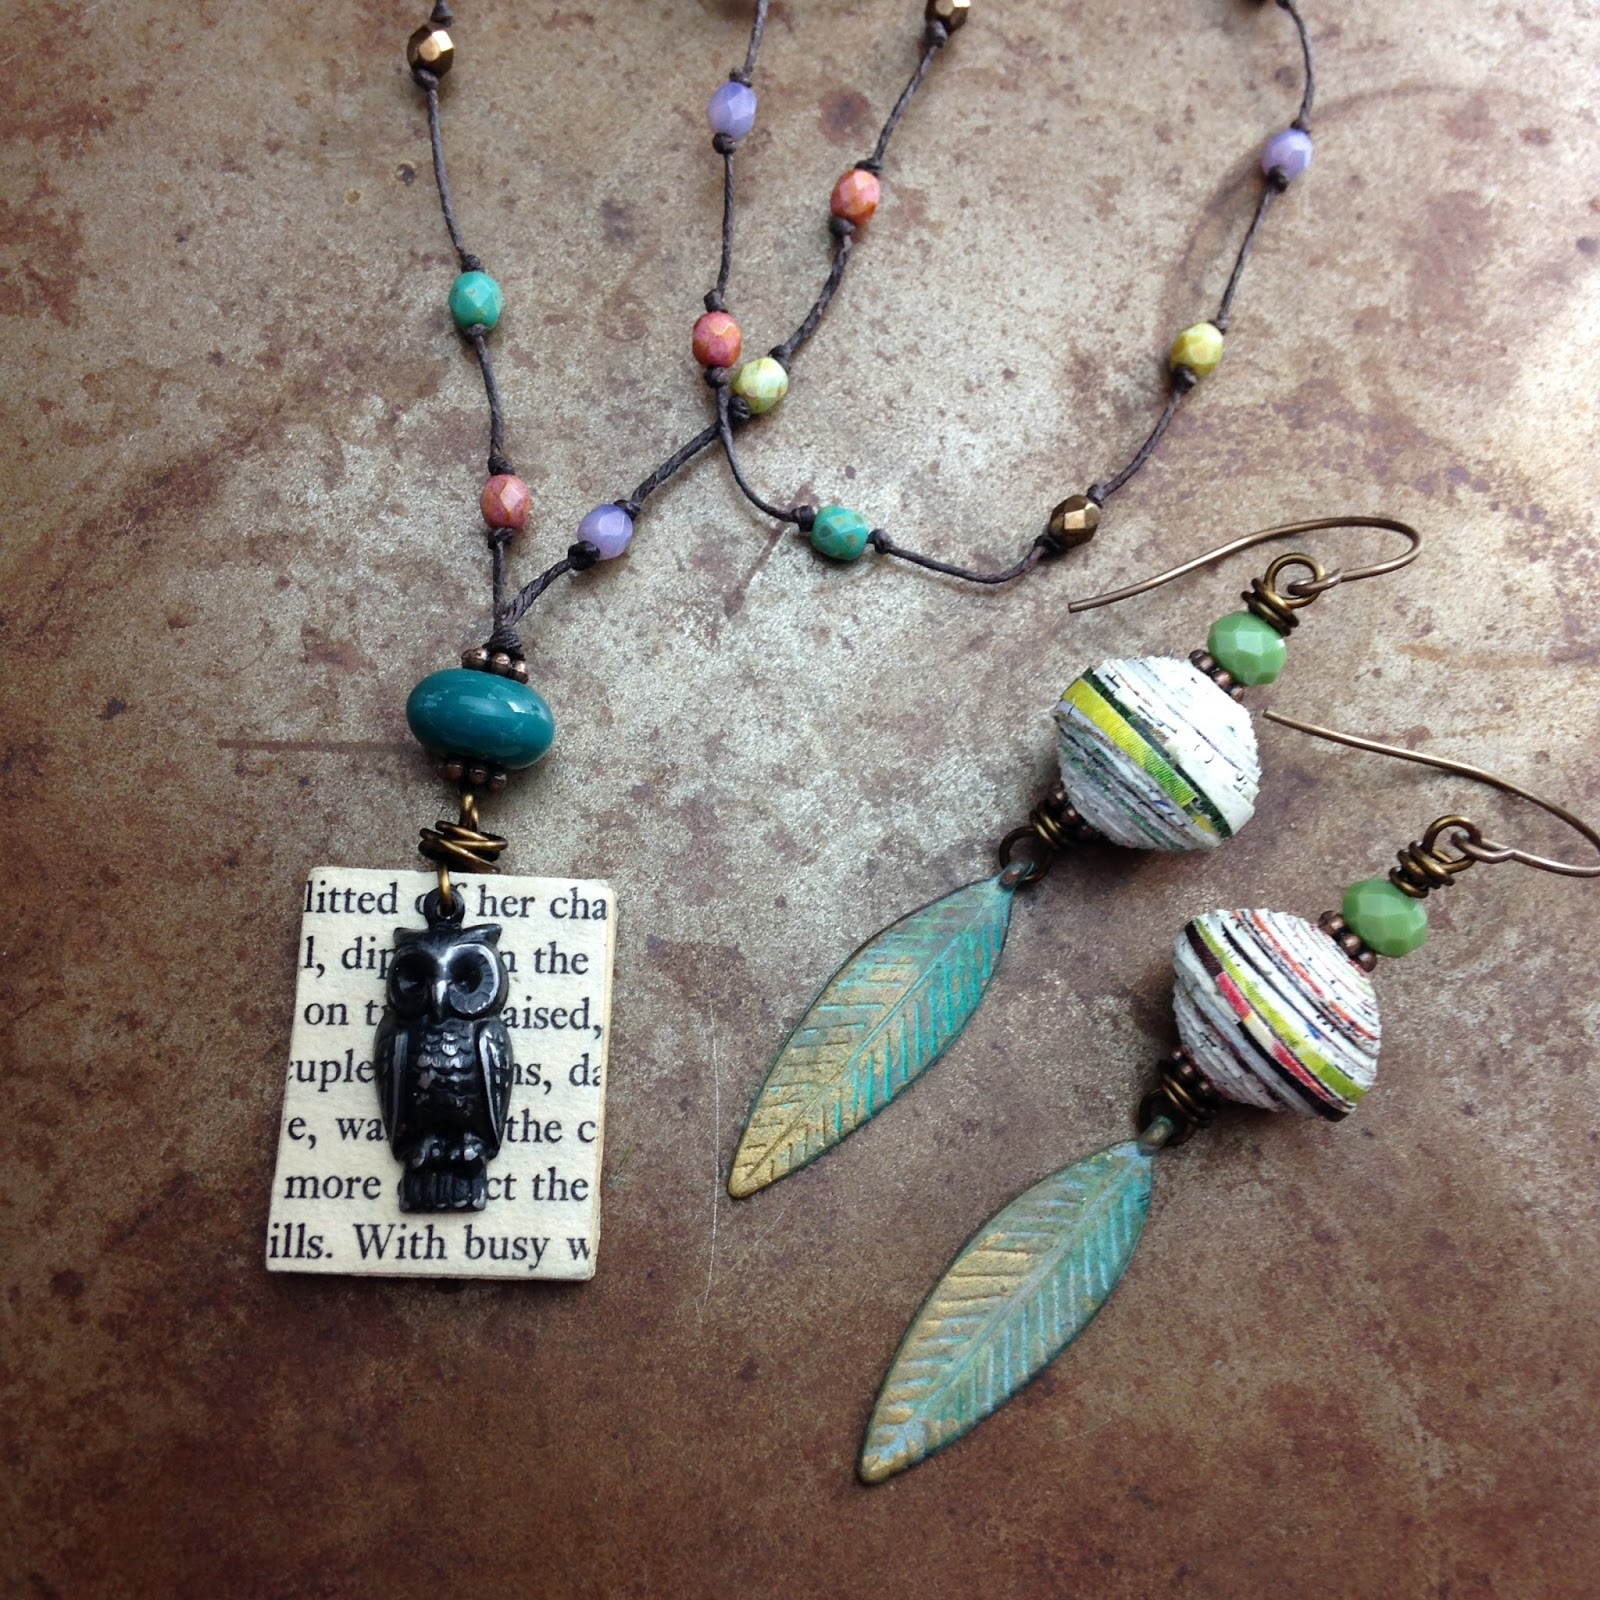 Blog humblebeads love being green i have quite a few projects that upcycle paper into beads and pendants little book pendants and paper beads from magazines give you a solutioingenieria Images